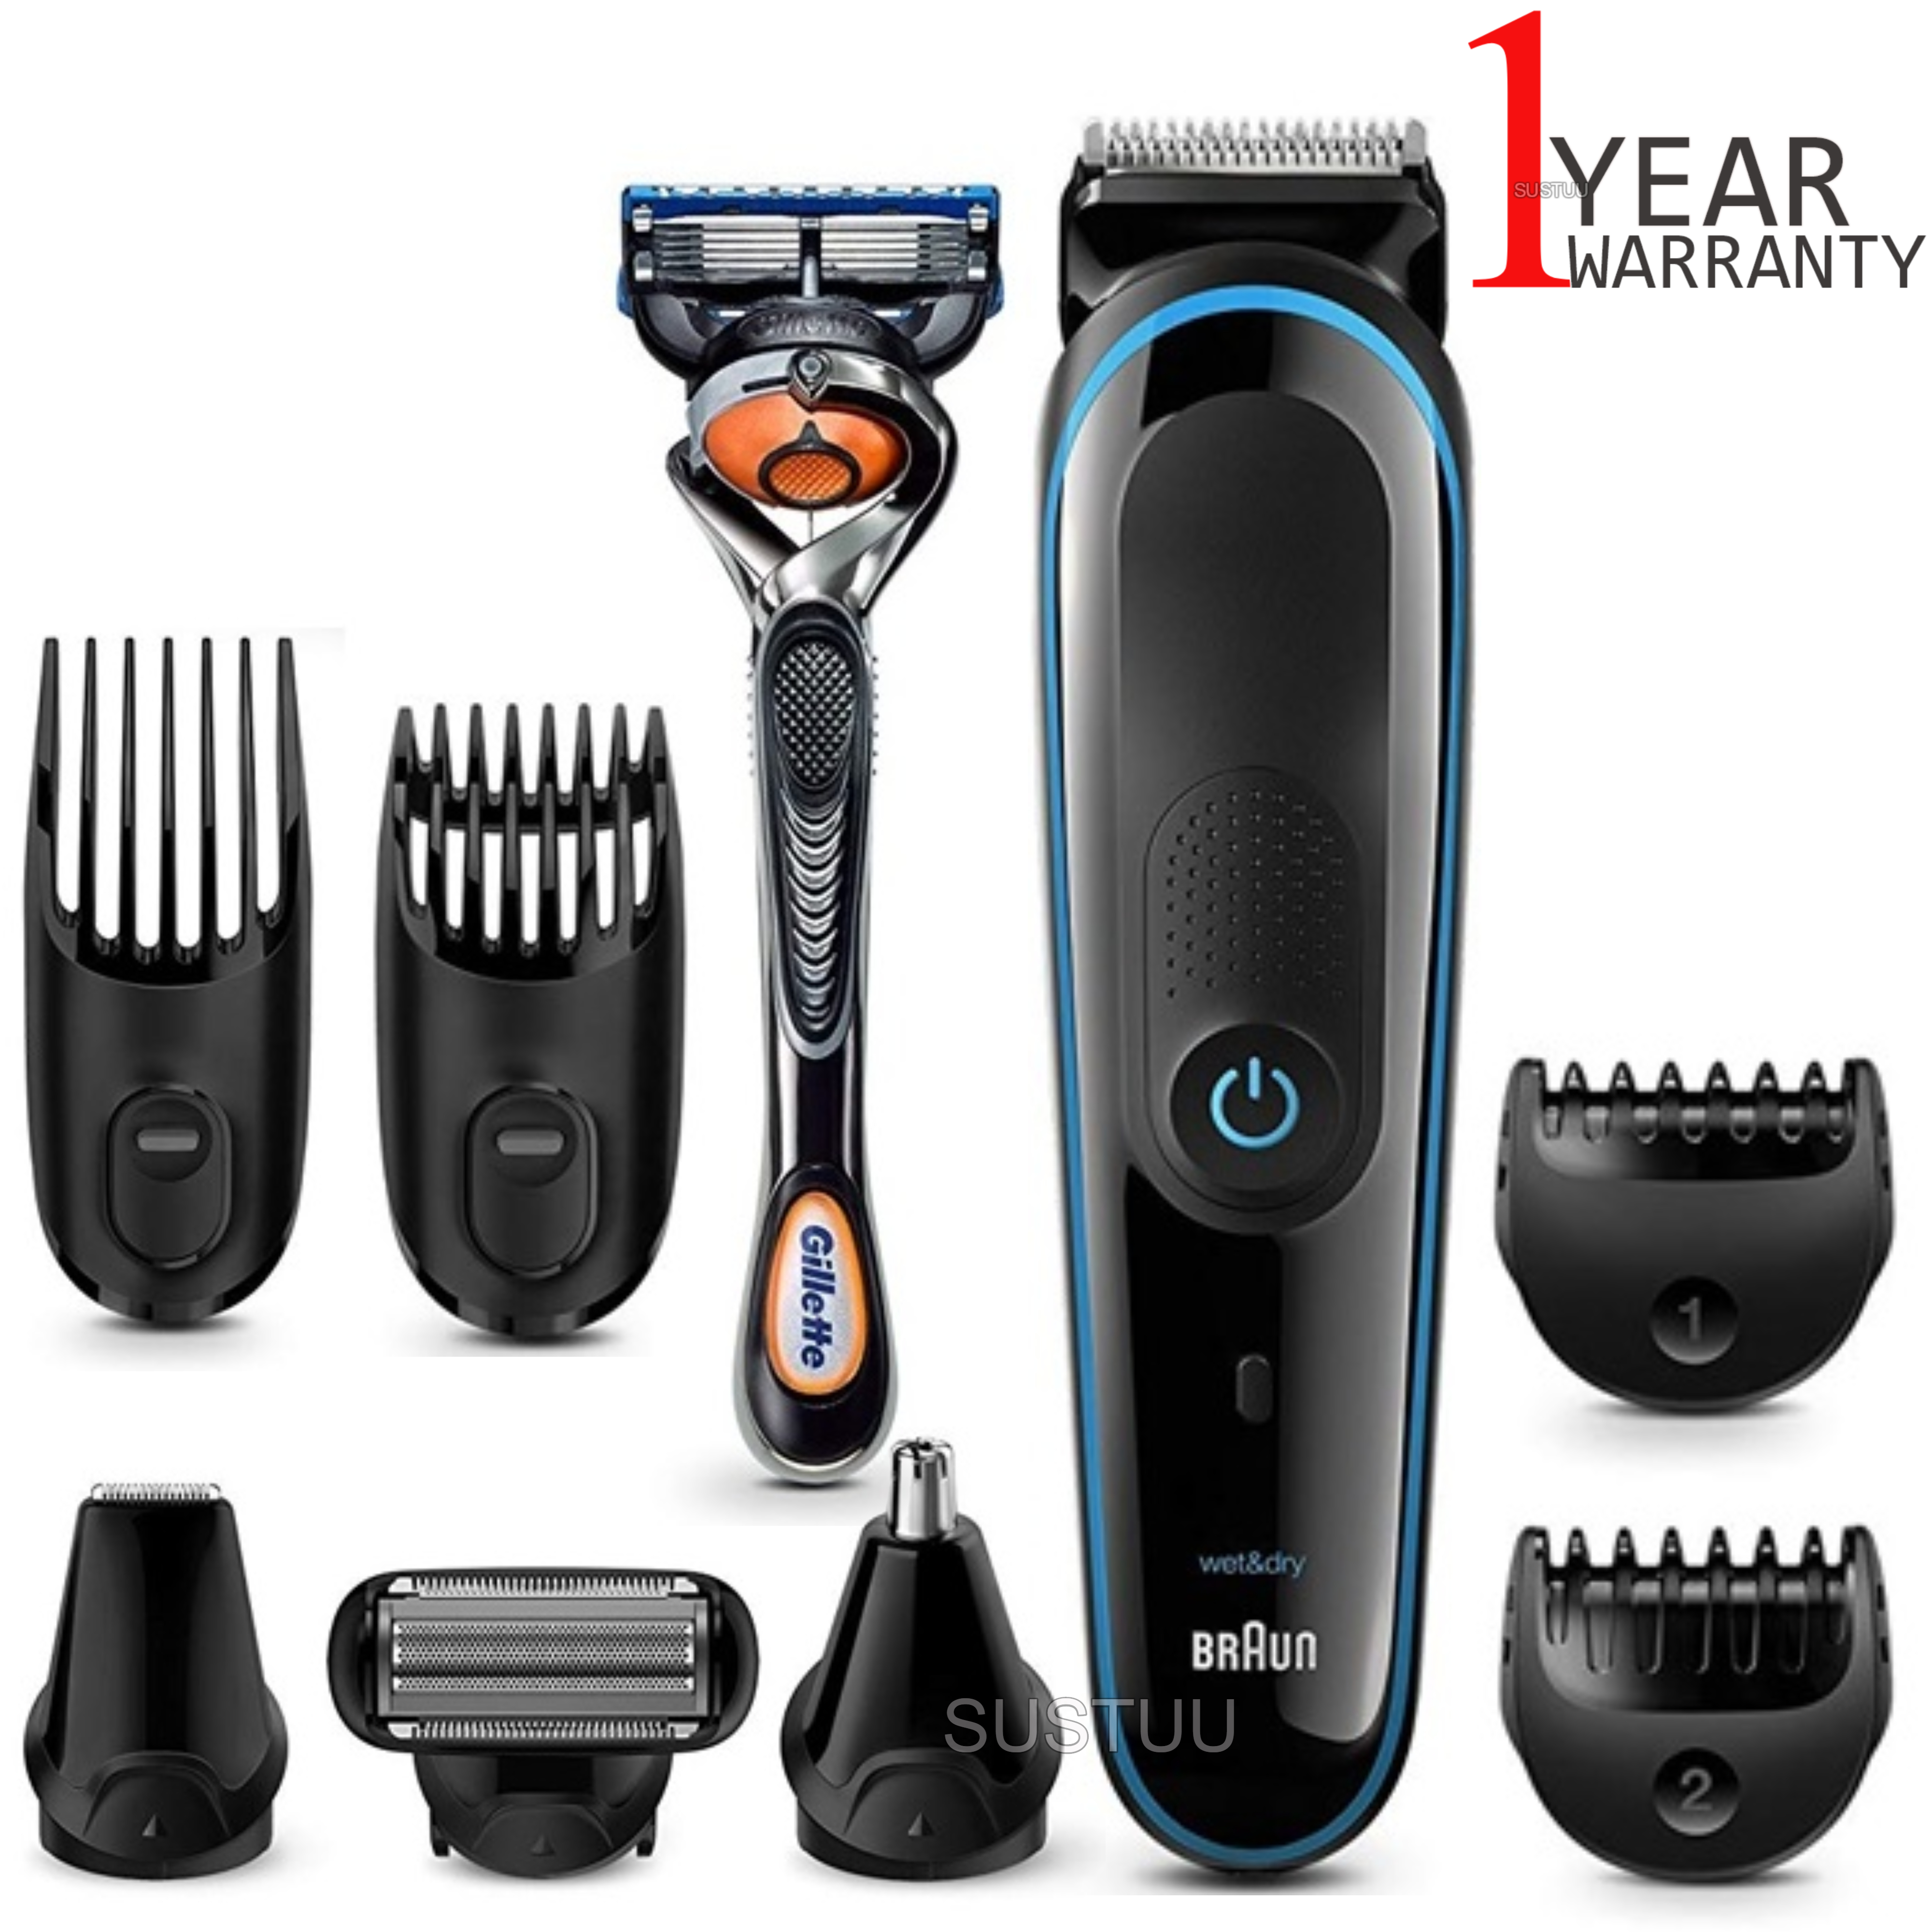 Braun Multi Grooming Kit | 9 in 1 Precision Trimmer for Beard & Hair Style | MGK3085